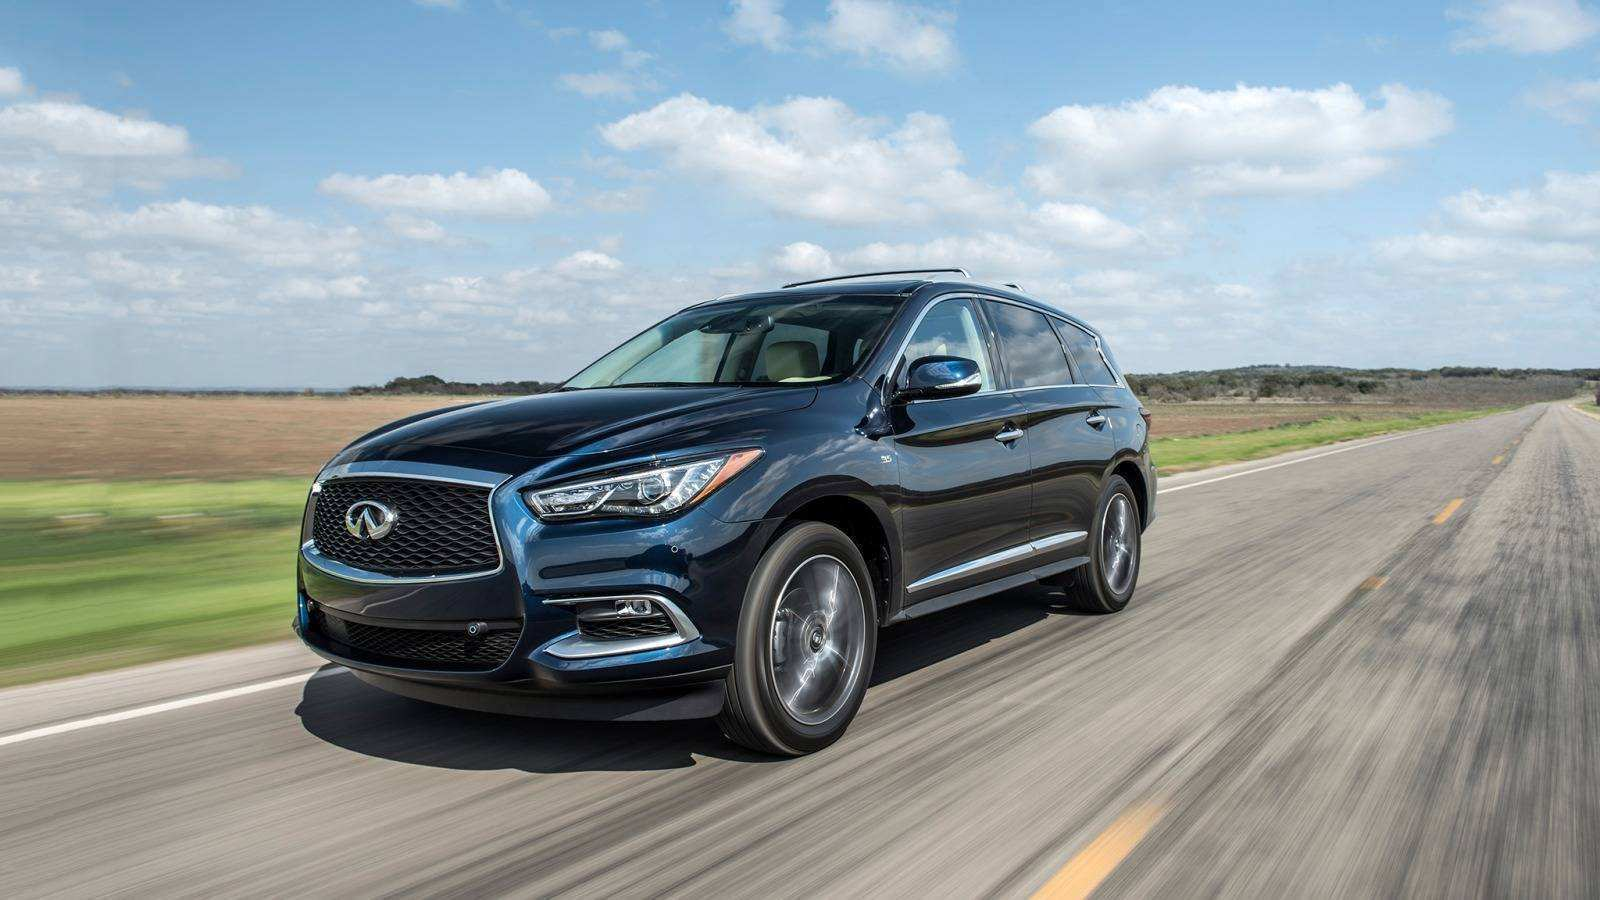 22 New The New Infiniti Qx60 2019 Spesification Redesign with The New Infiniti Qx60 2019 Spesification